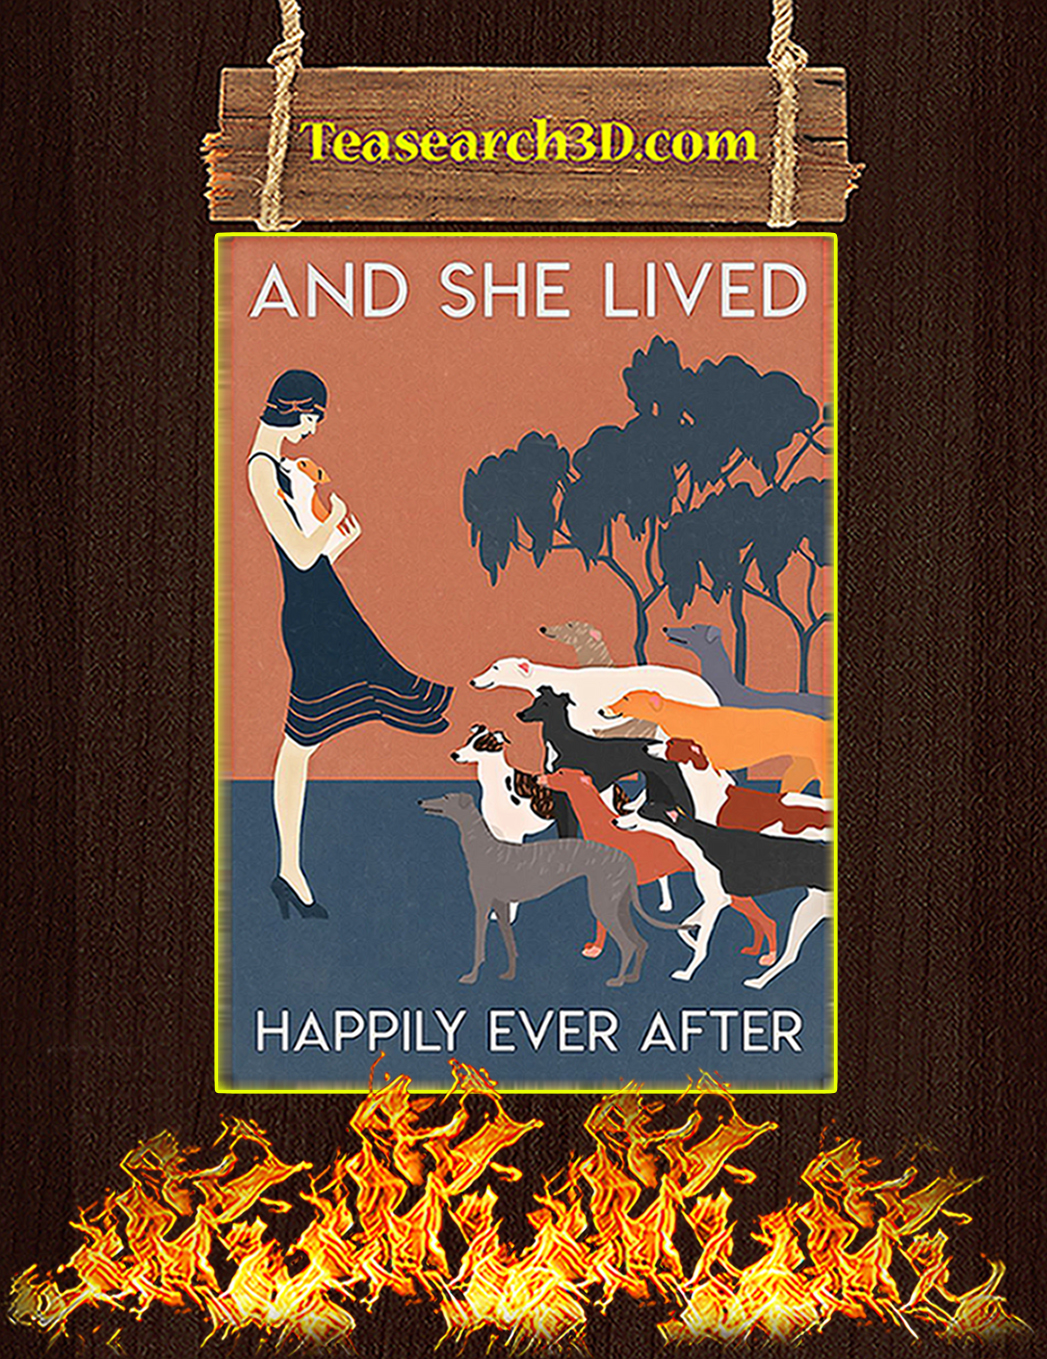 Greyhound And she lived happily ever after poster A1